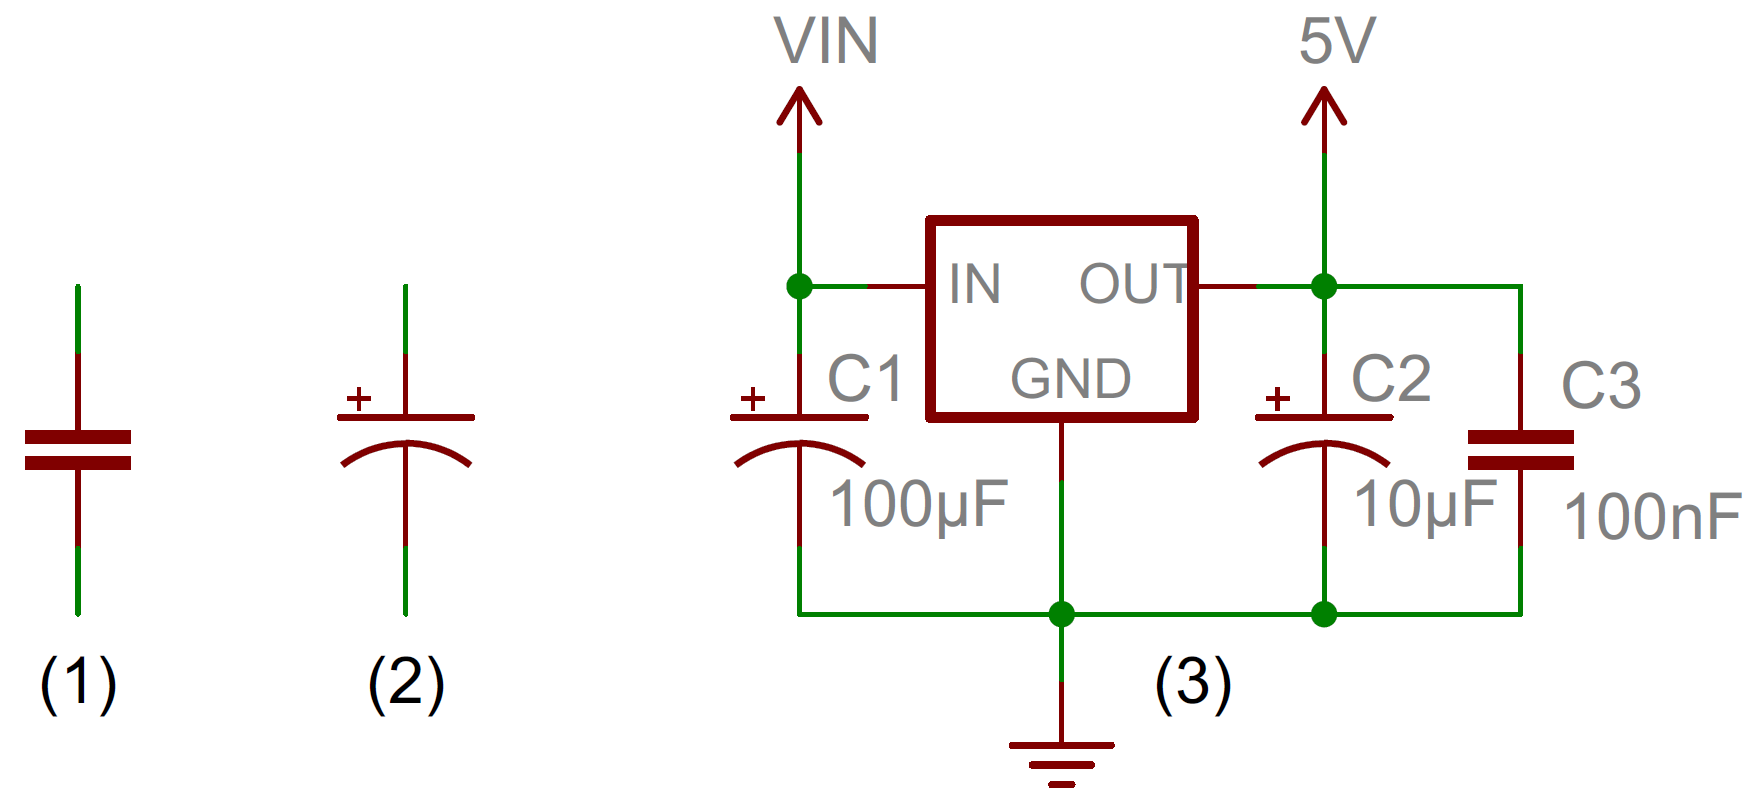 Capacitors Ac Voltage Generator Wiring Diagram Capacitor Circuit Symbols